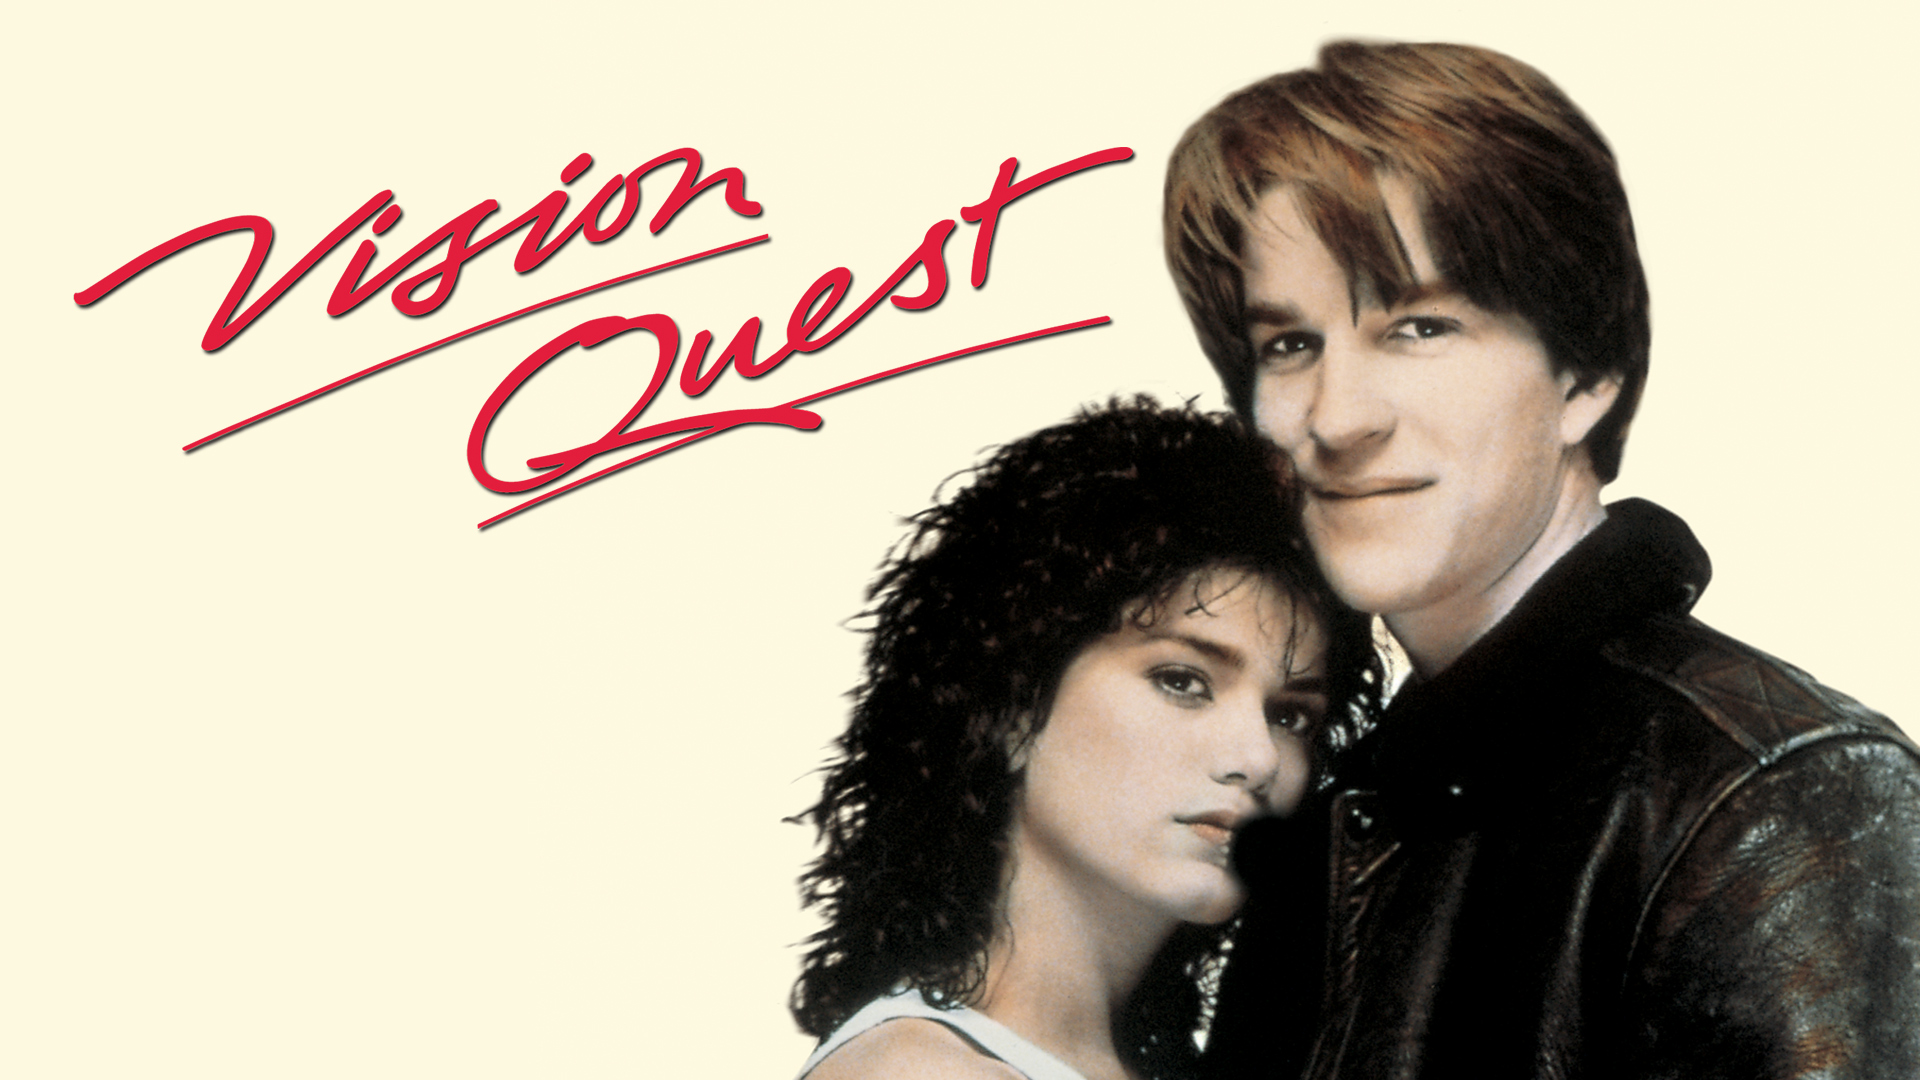 Vision Quest (crazy For You)